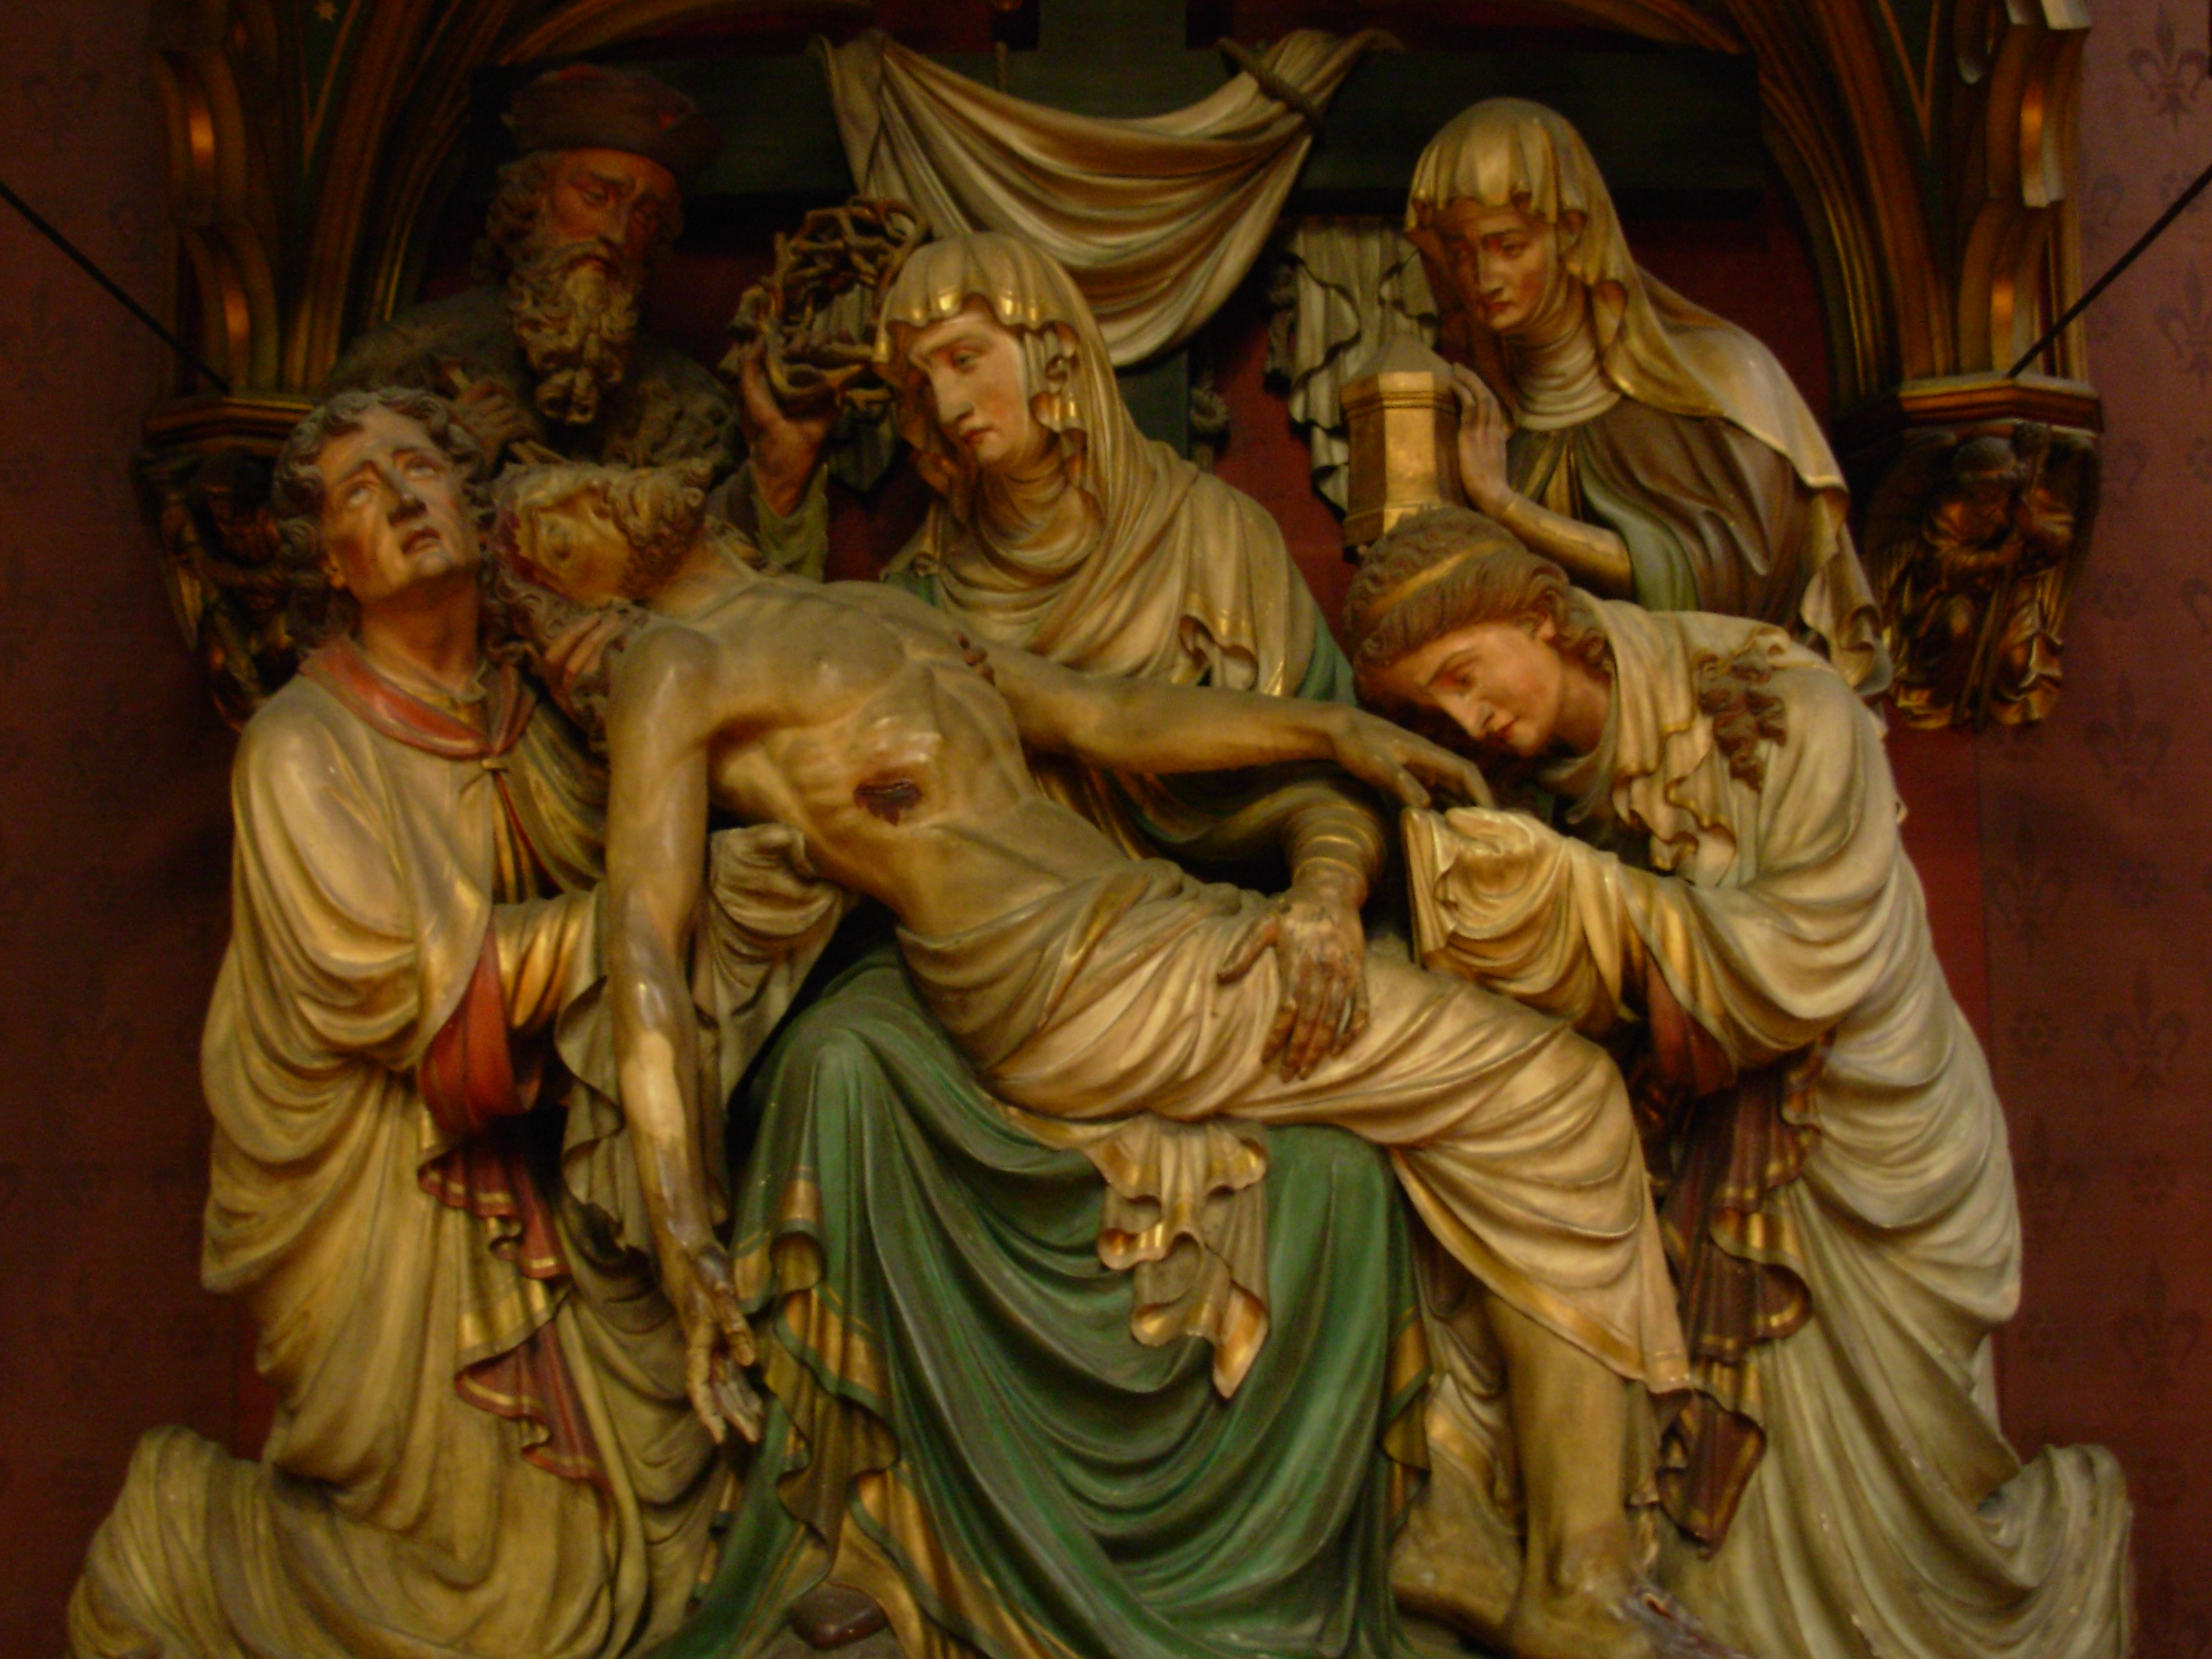 I photographed this sculpture inside Cologne Cathedral, May 2007.